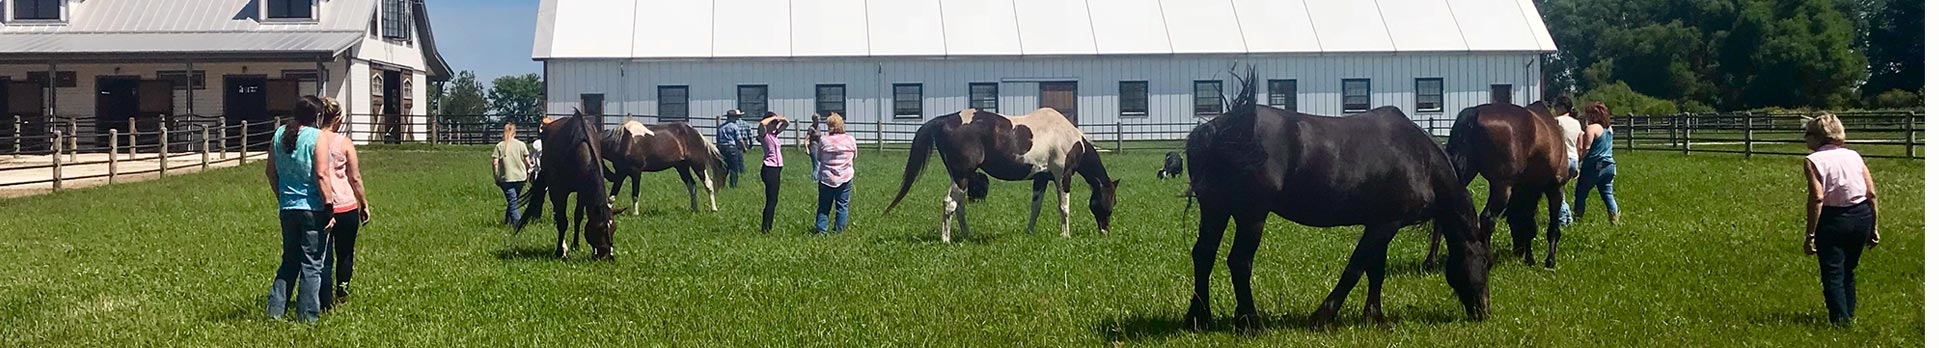 Horses in pasture with people